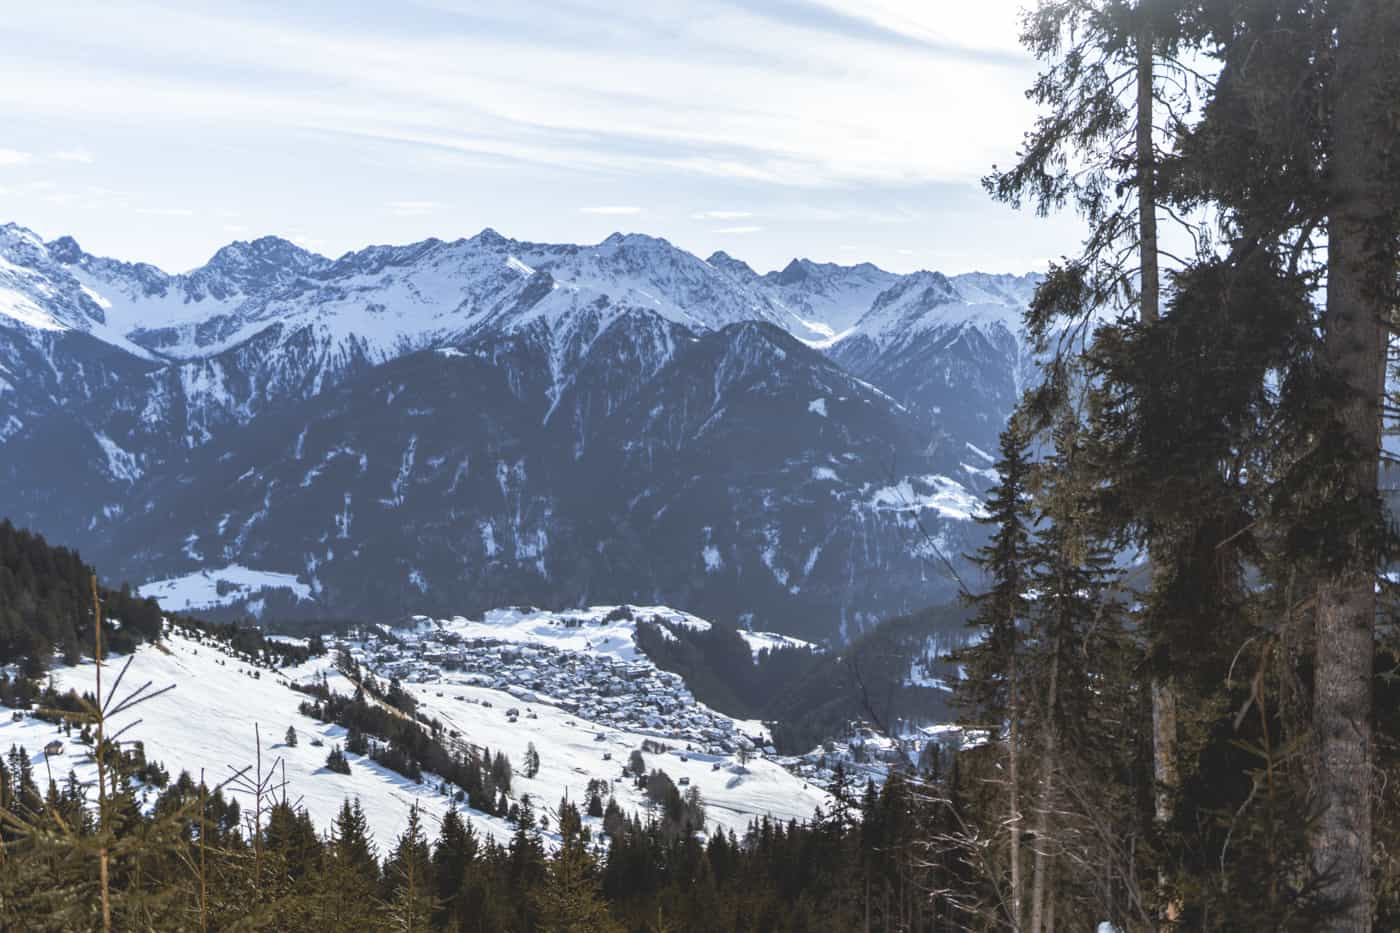 Serfaus-Fiss-Ladis Winter